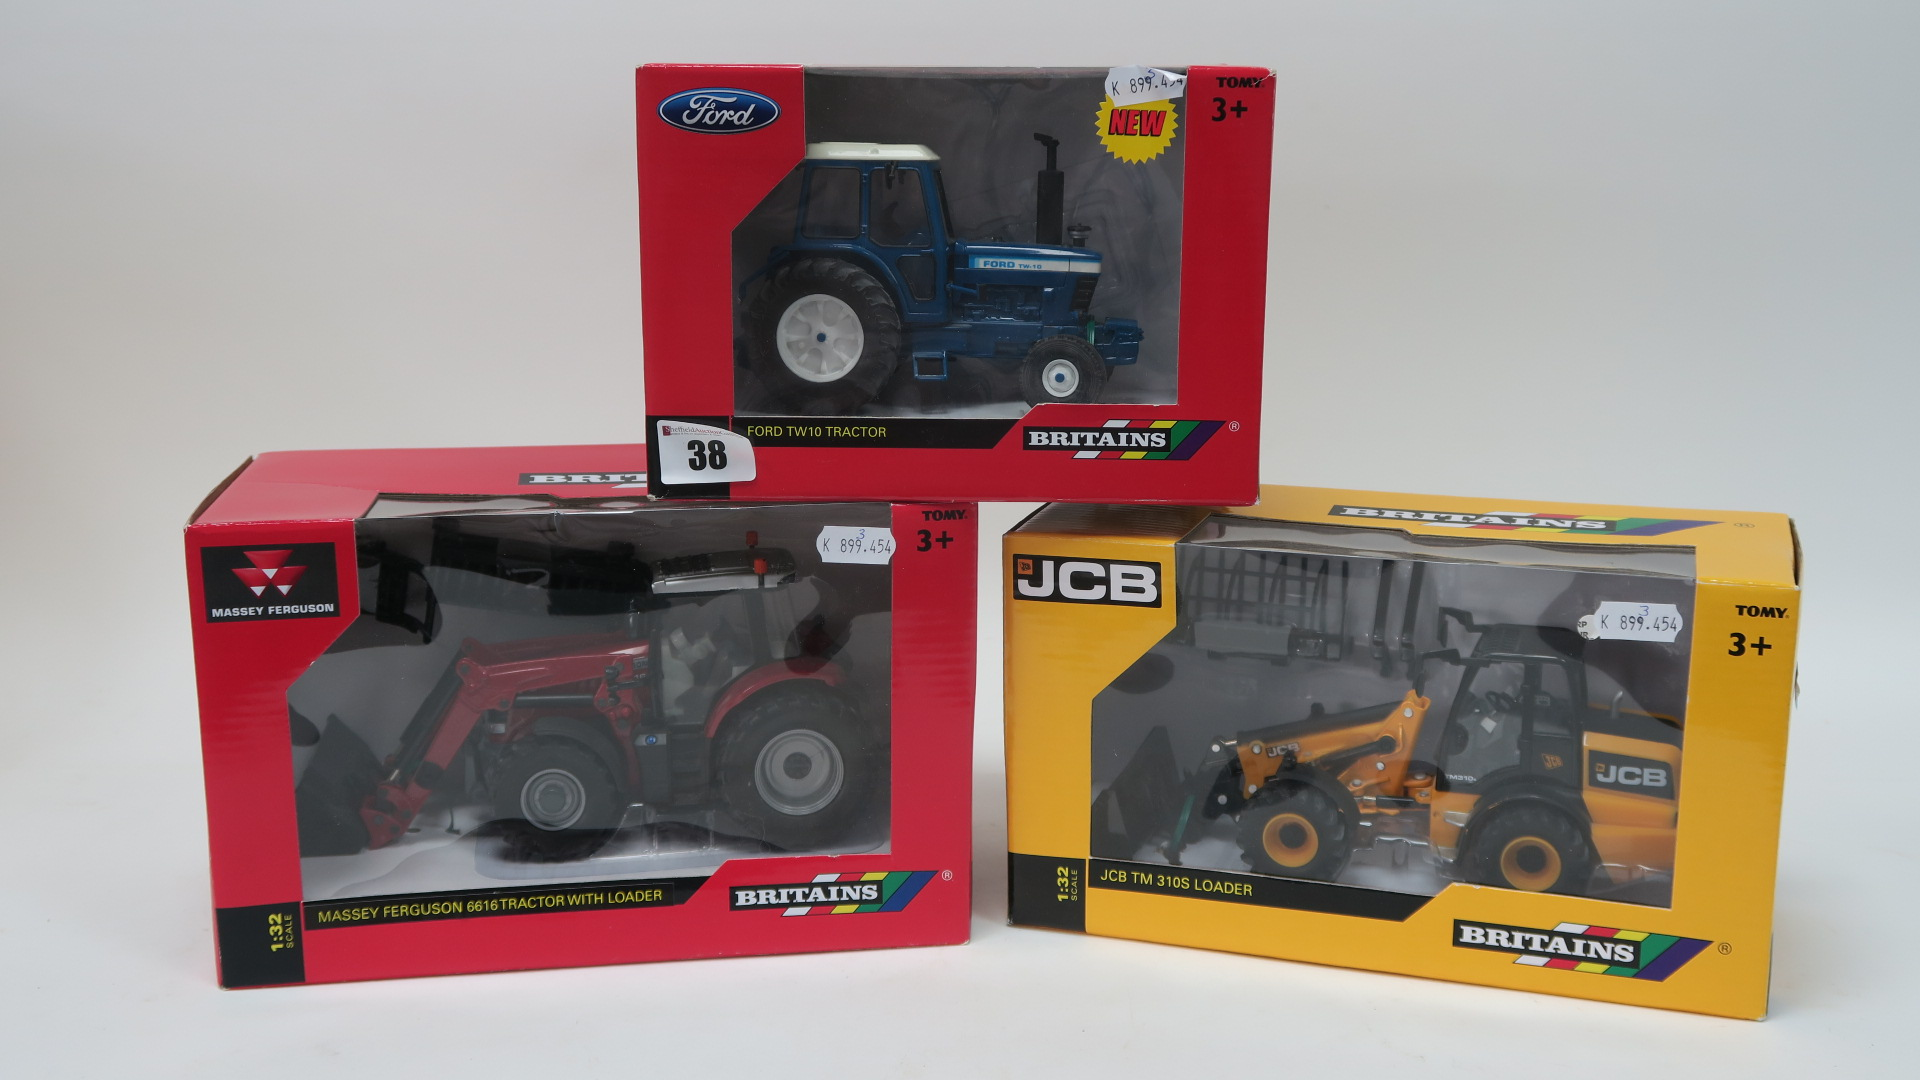 Lot 38 - Three Boxed Britains 1/32nd Scale Diecast Model Tractors, #42839 Ford TW10 Tractor, # 43082AI Massey